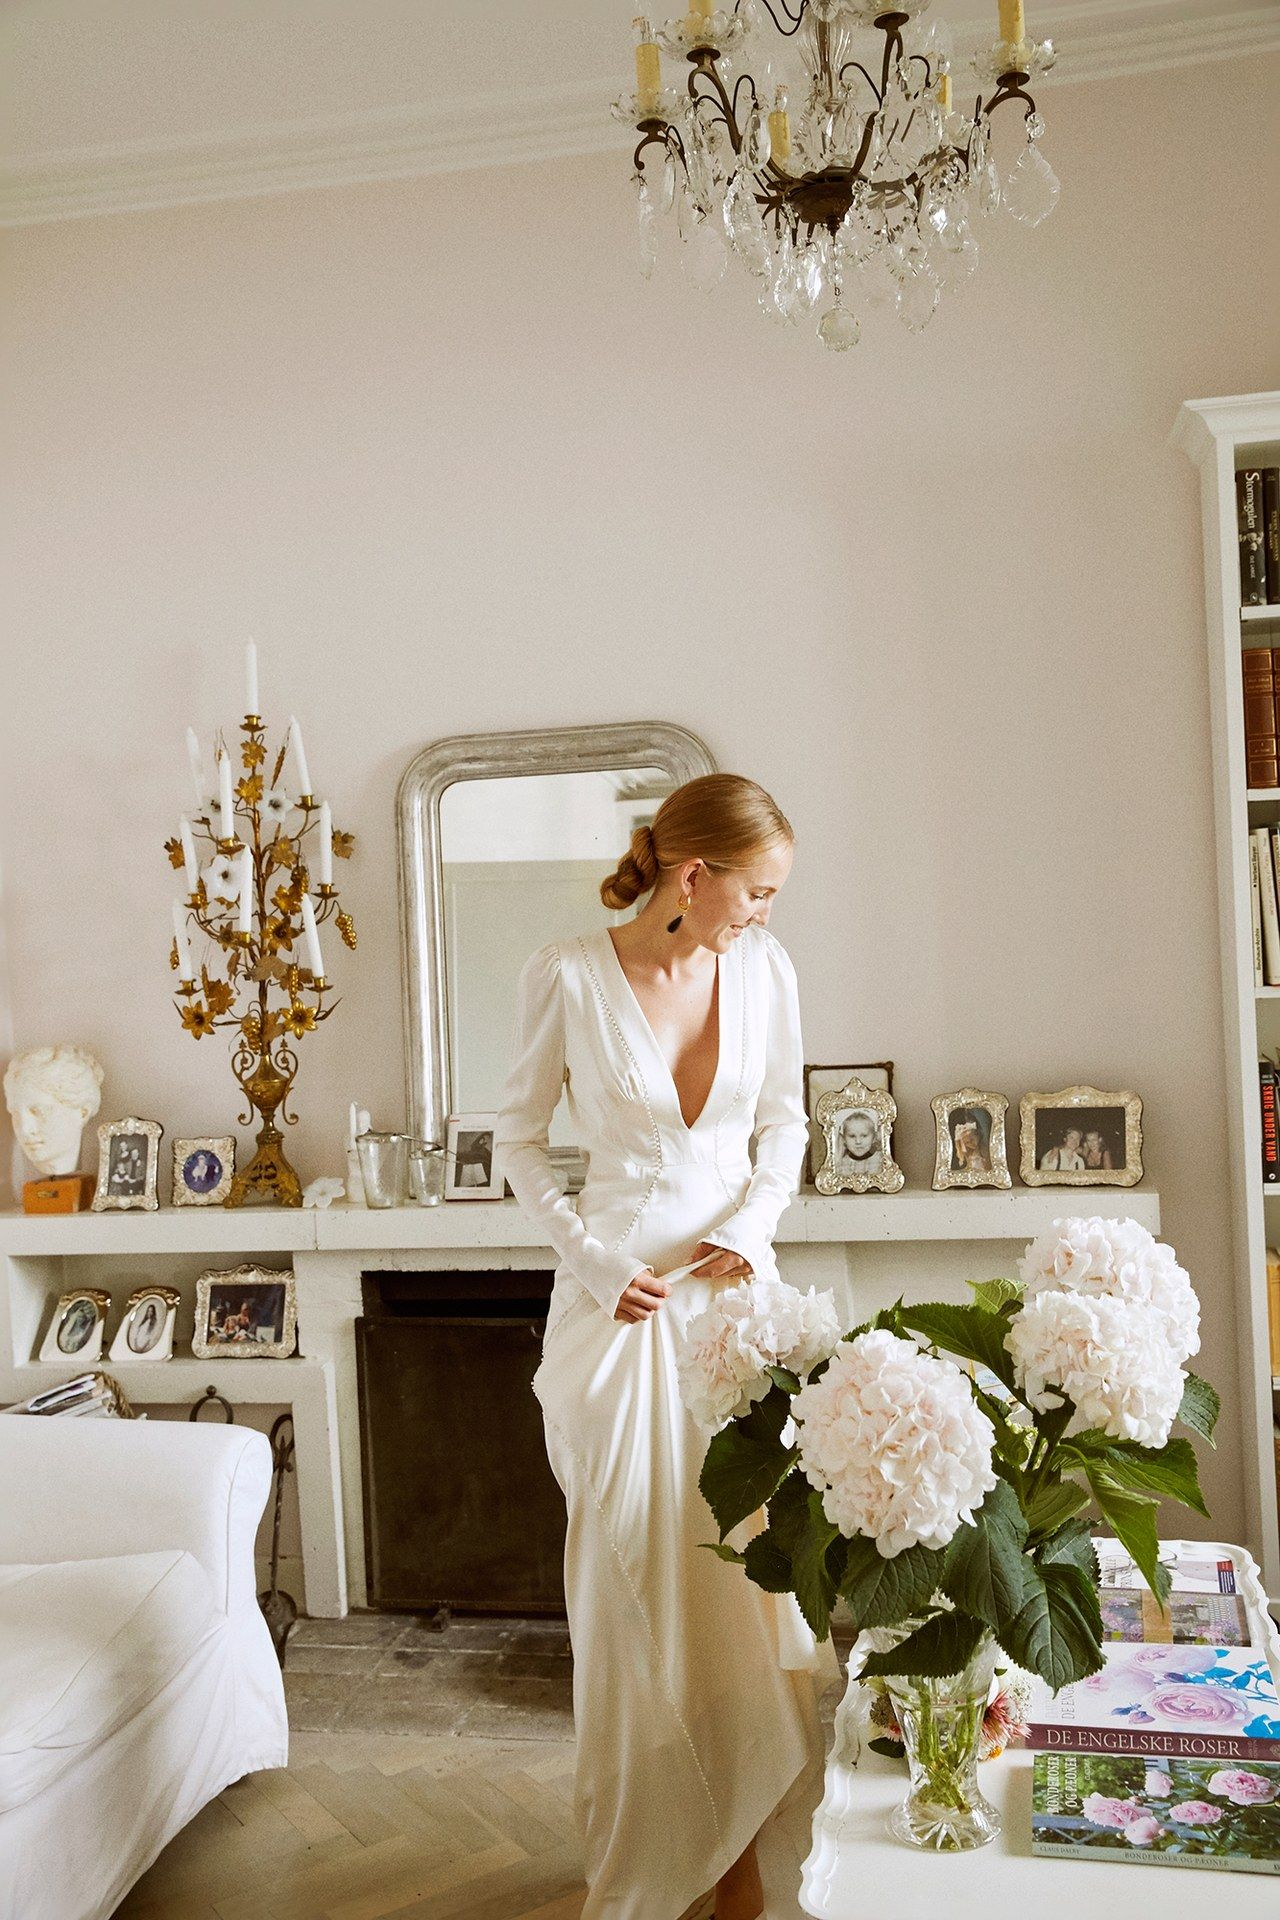 Stylist Alexandra Carl and Filmmaker Jacob John Harmer's Effortlessly Elegant Wedding in Copenhagen is part of Wedding - The bride wore a pearledged cape for her cozy yet sophisticated wedding at her childhood home